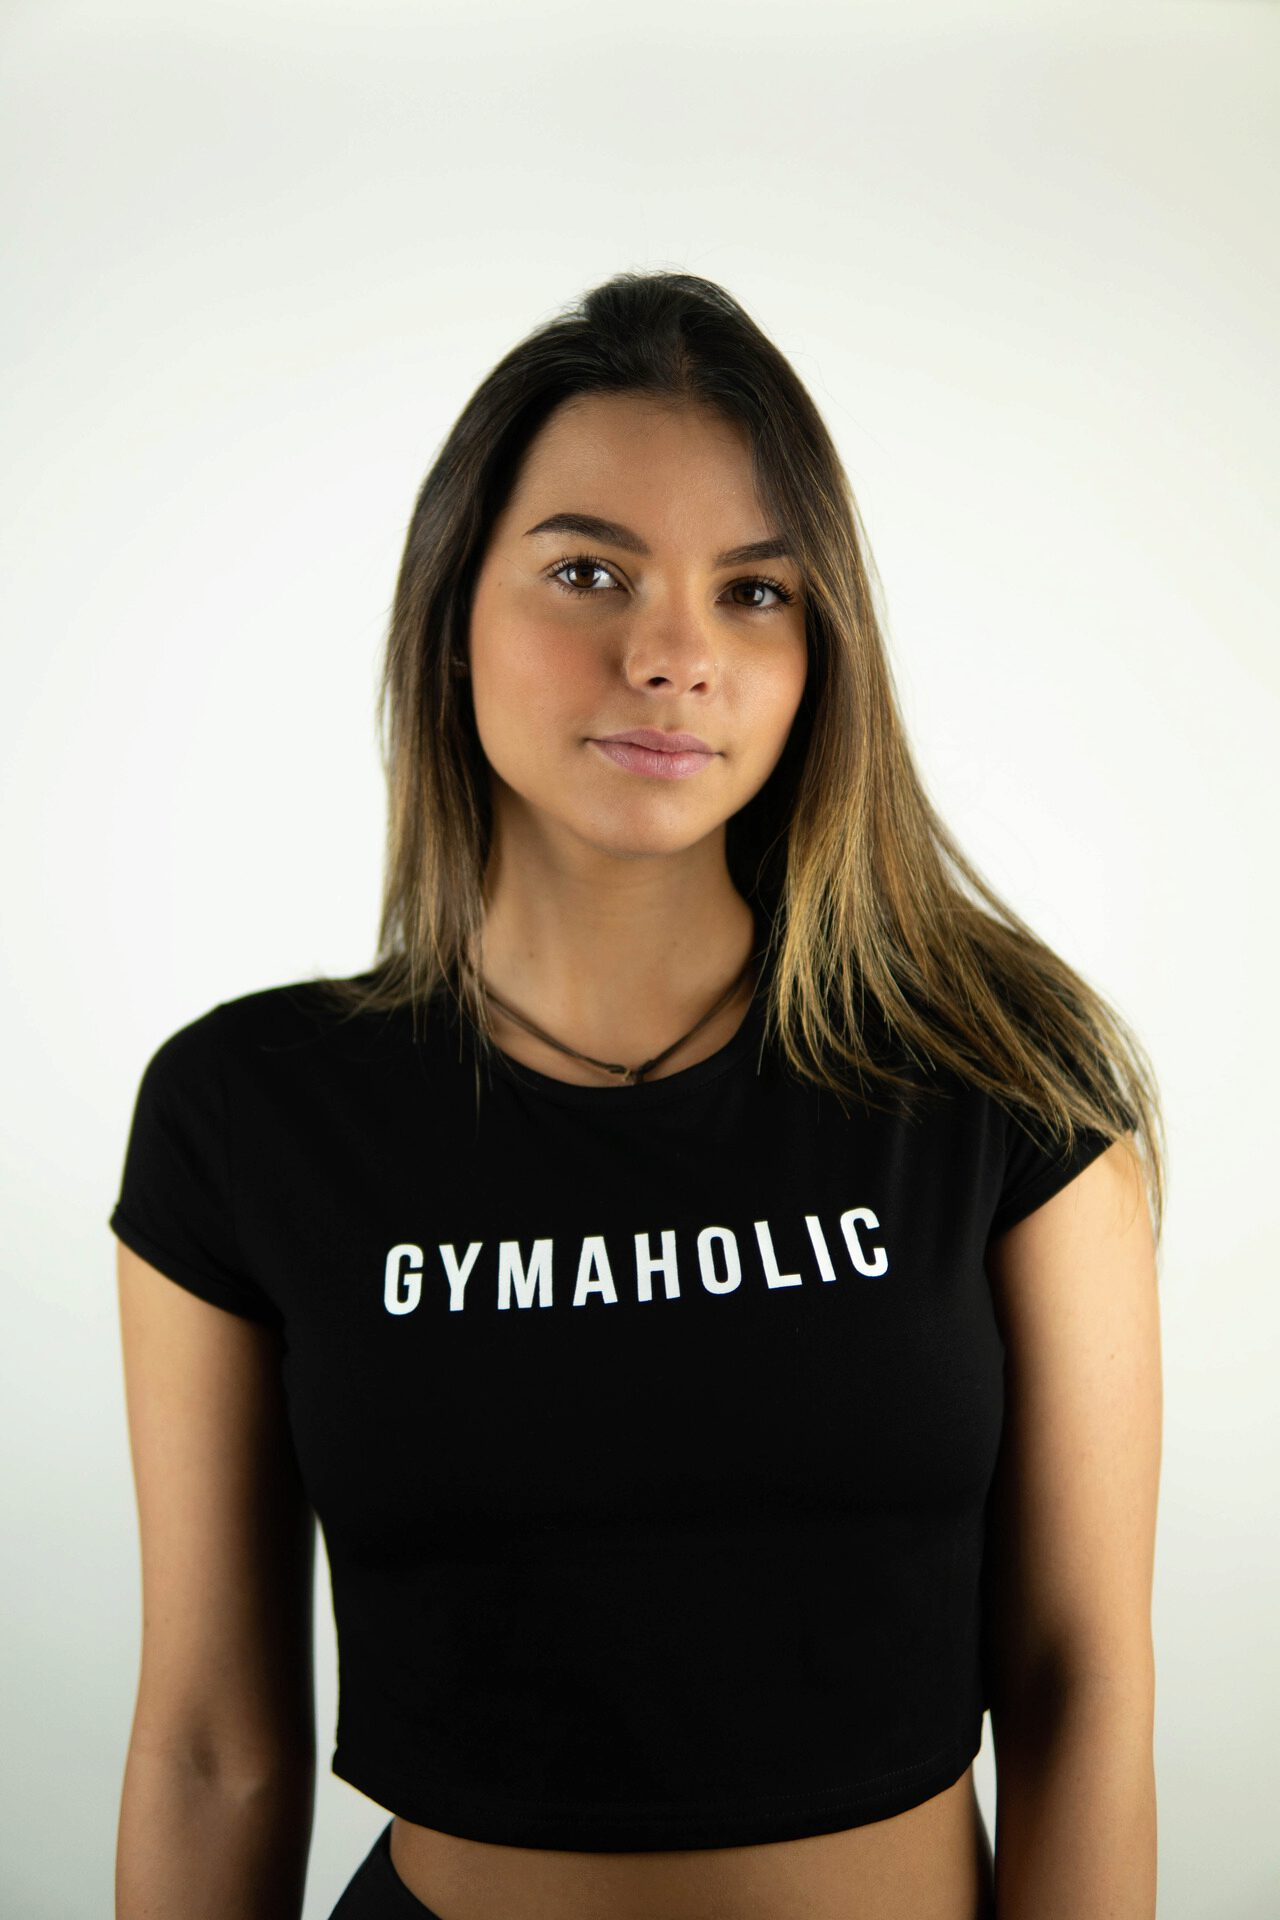 The Gymaholic Signature Crop Top was designed to help you exercise without any restrictions. You will quickly notice how comfortable and confident it will make you feel: